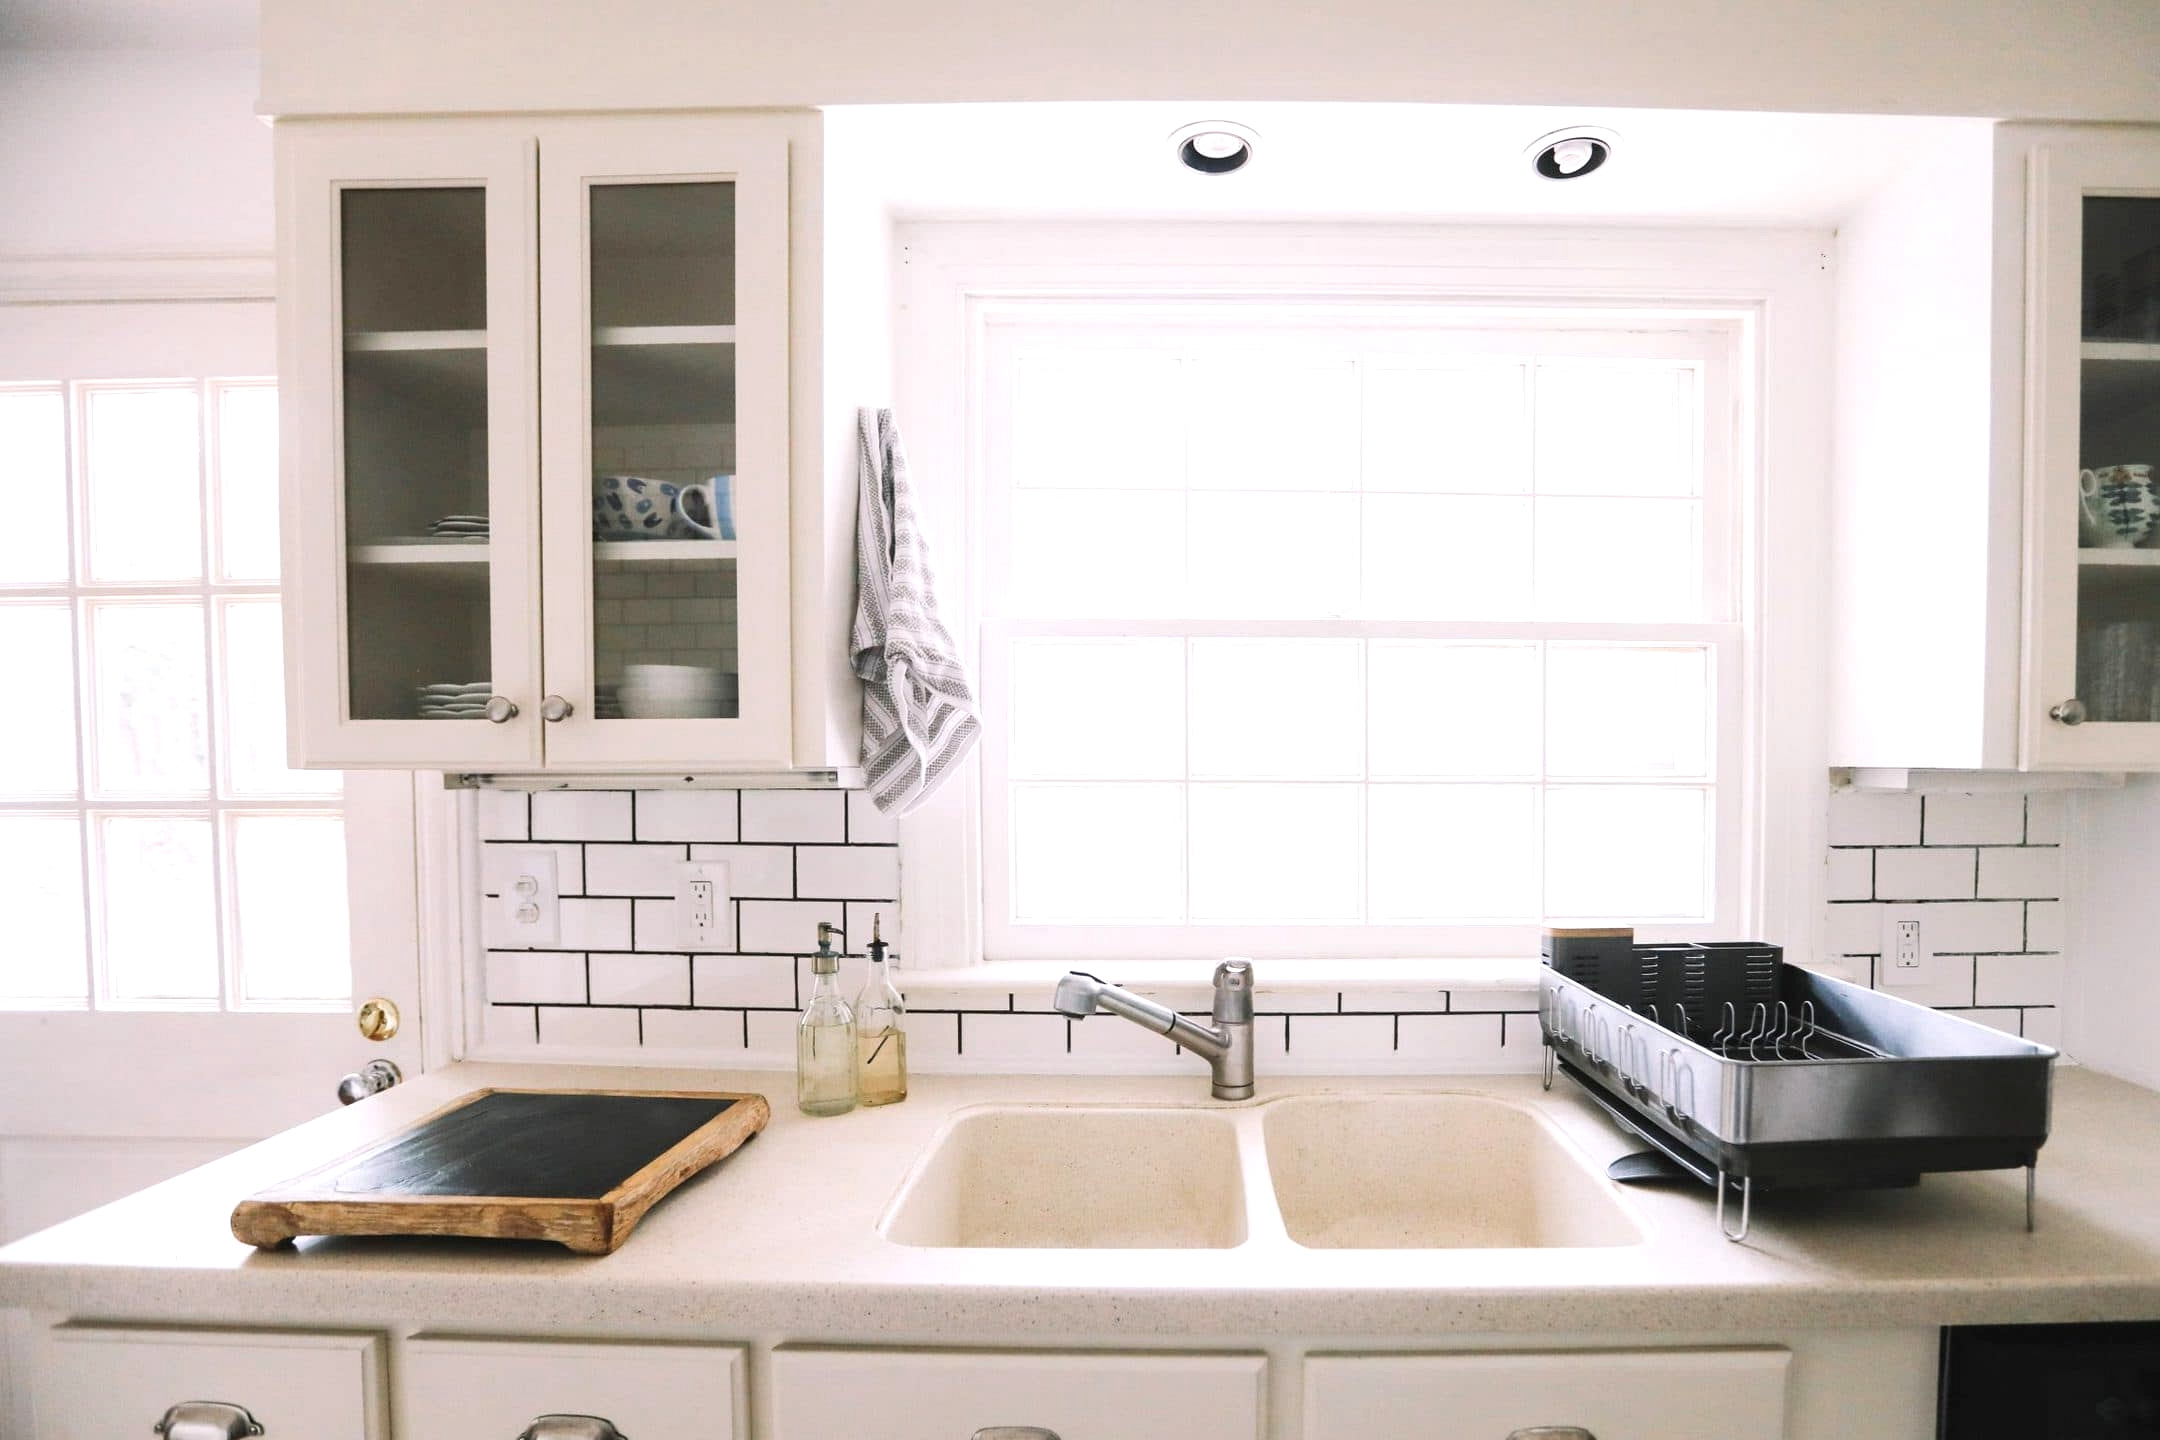 Use a Granite Composite Sink for the Farmhouse Look